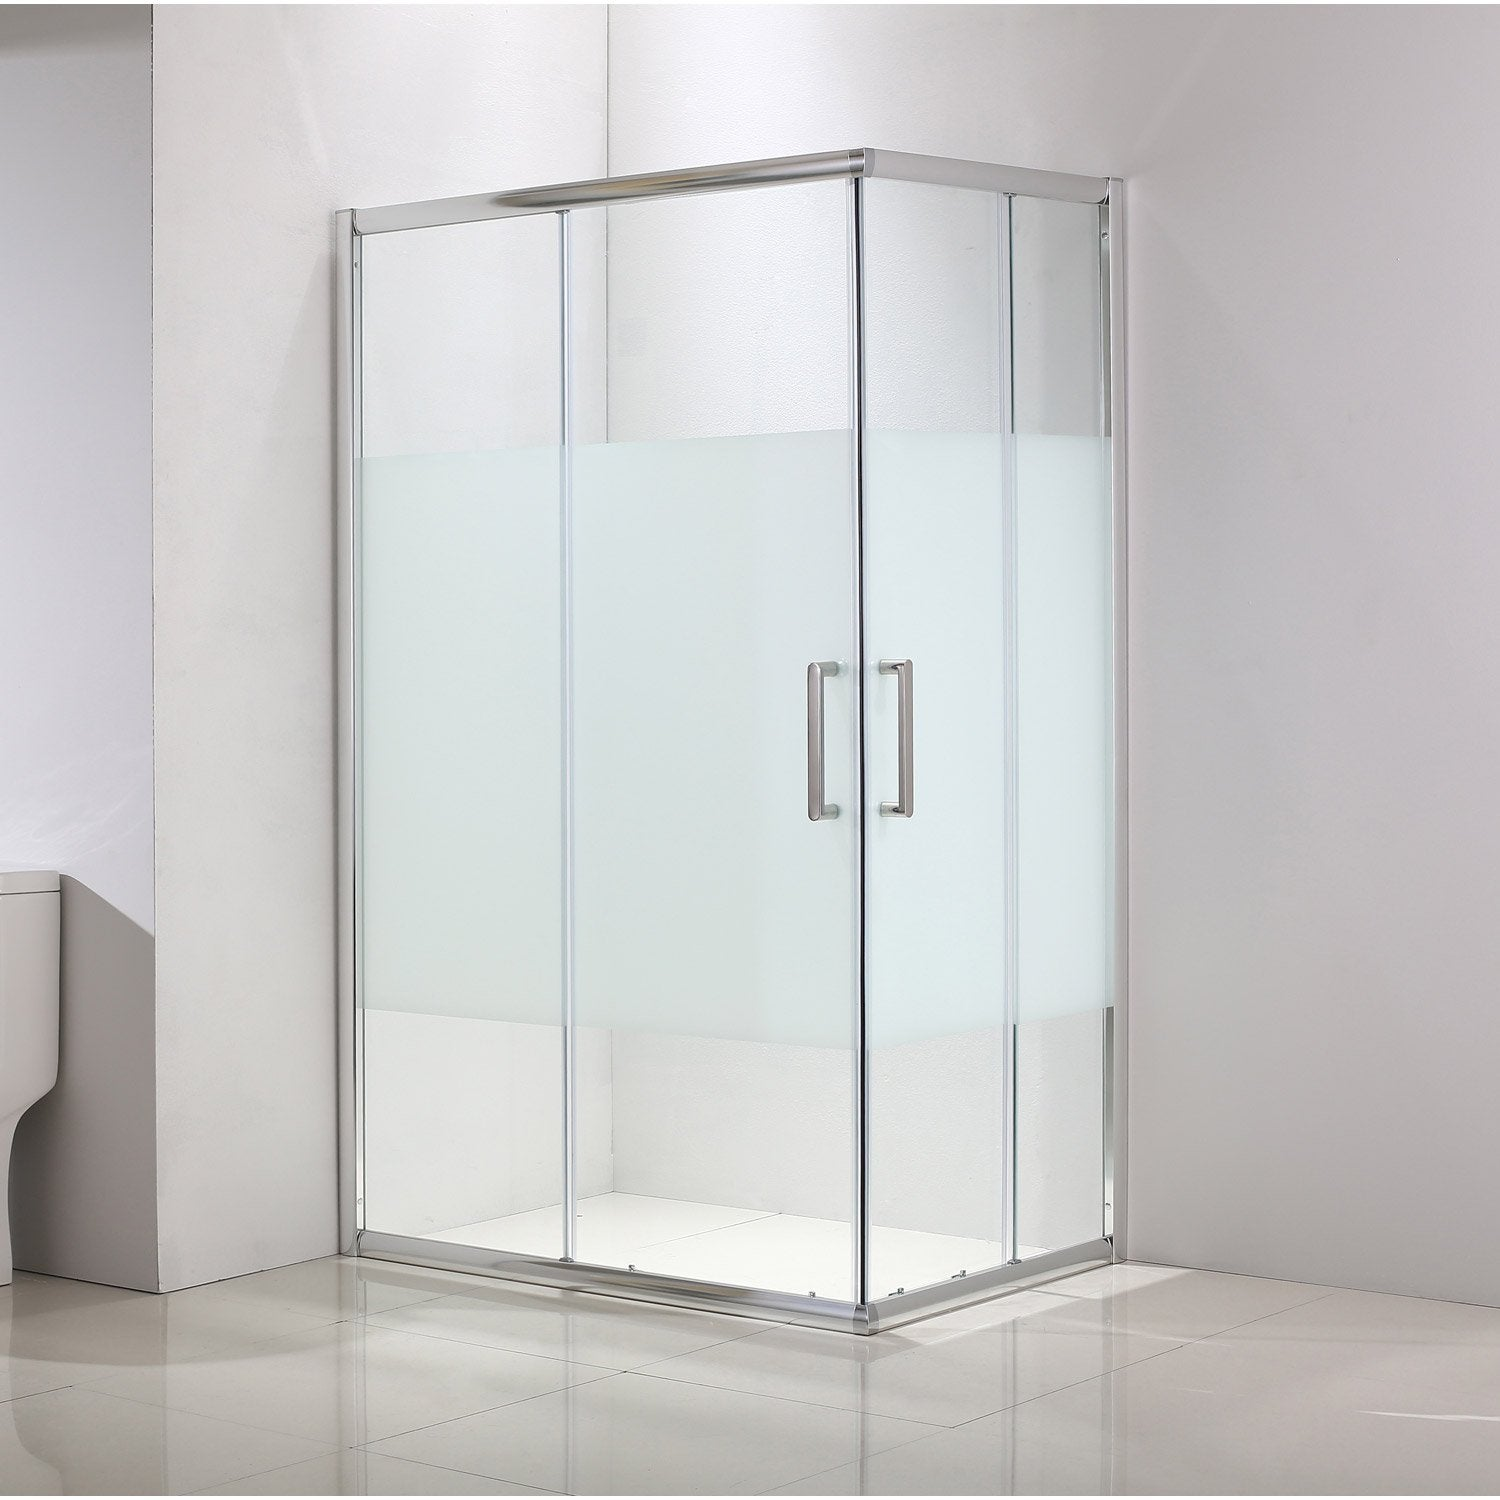 Porte de douche coulissante angle rectangle 90 x 70 cm s rigraphi quad - Porte coulissante 70 cm ...